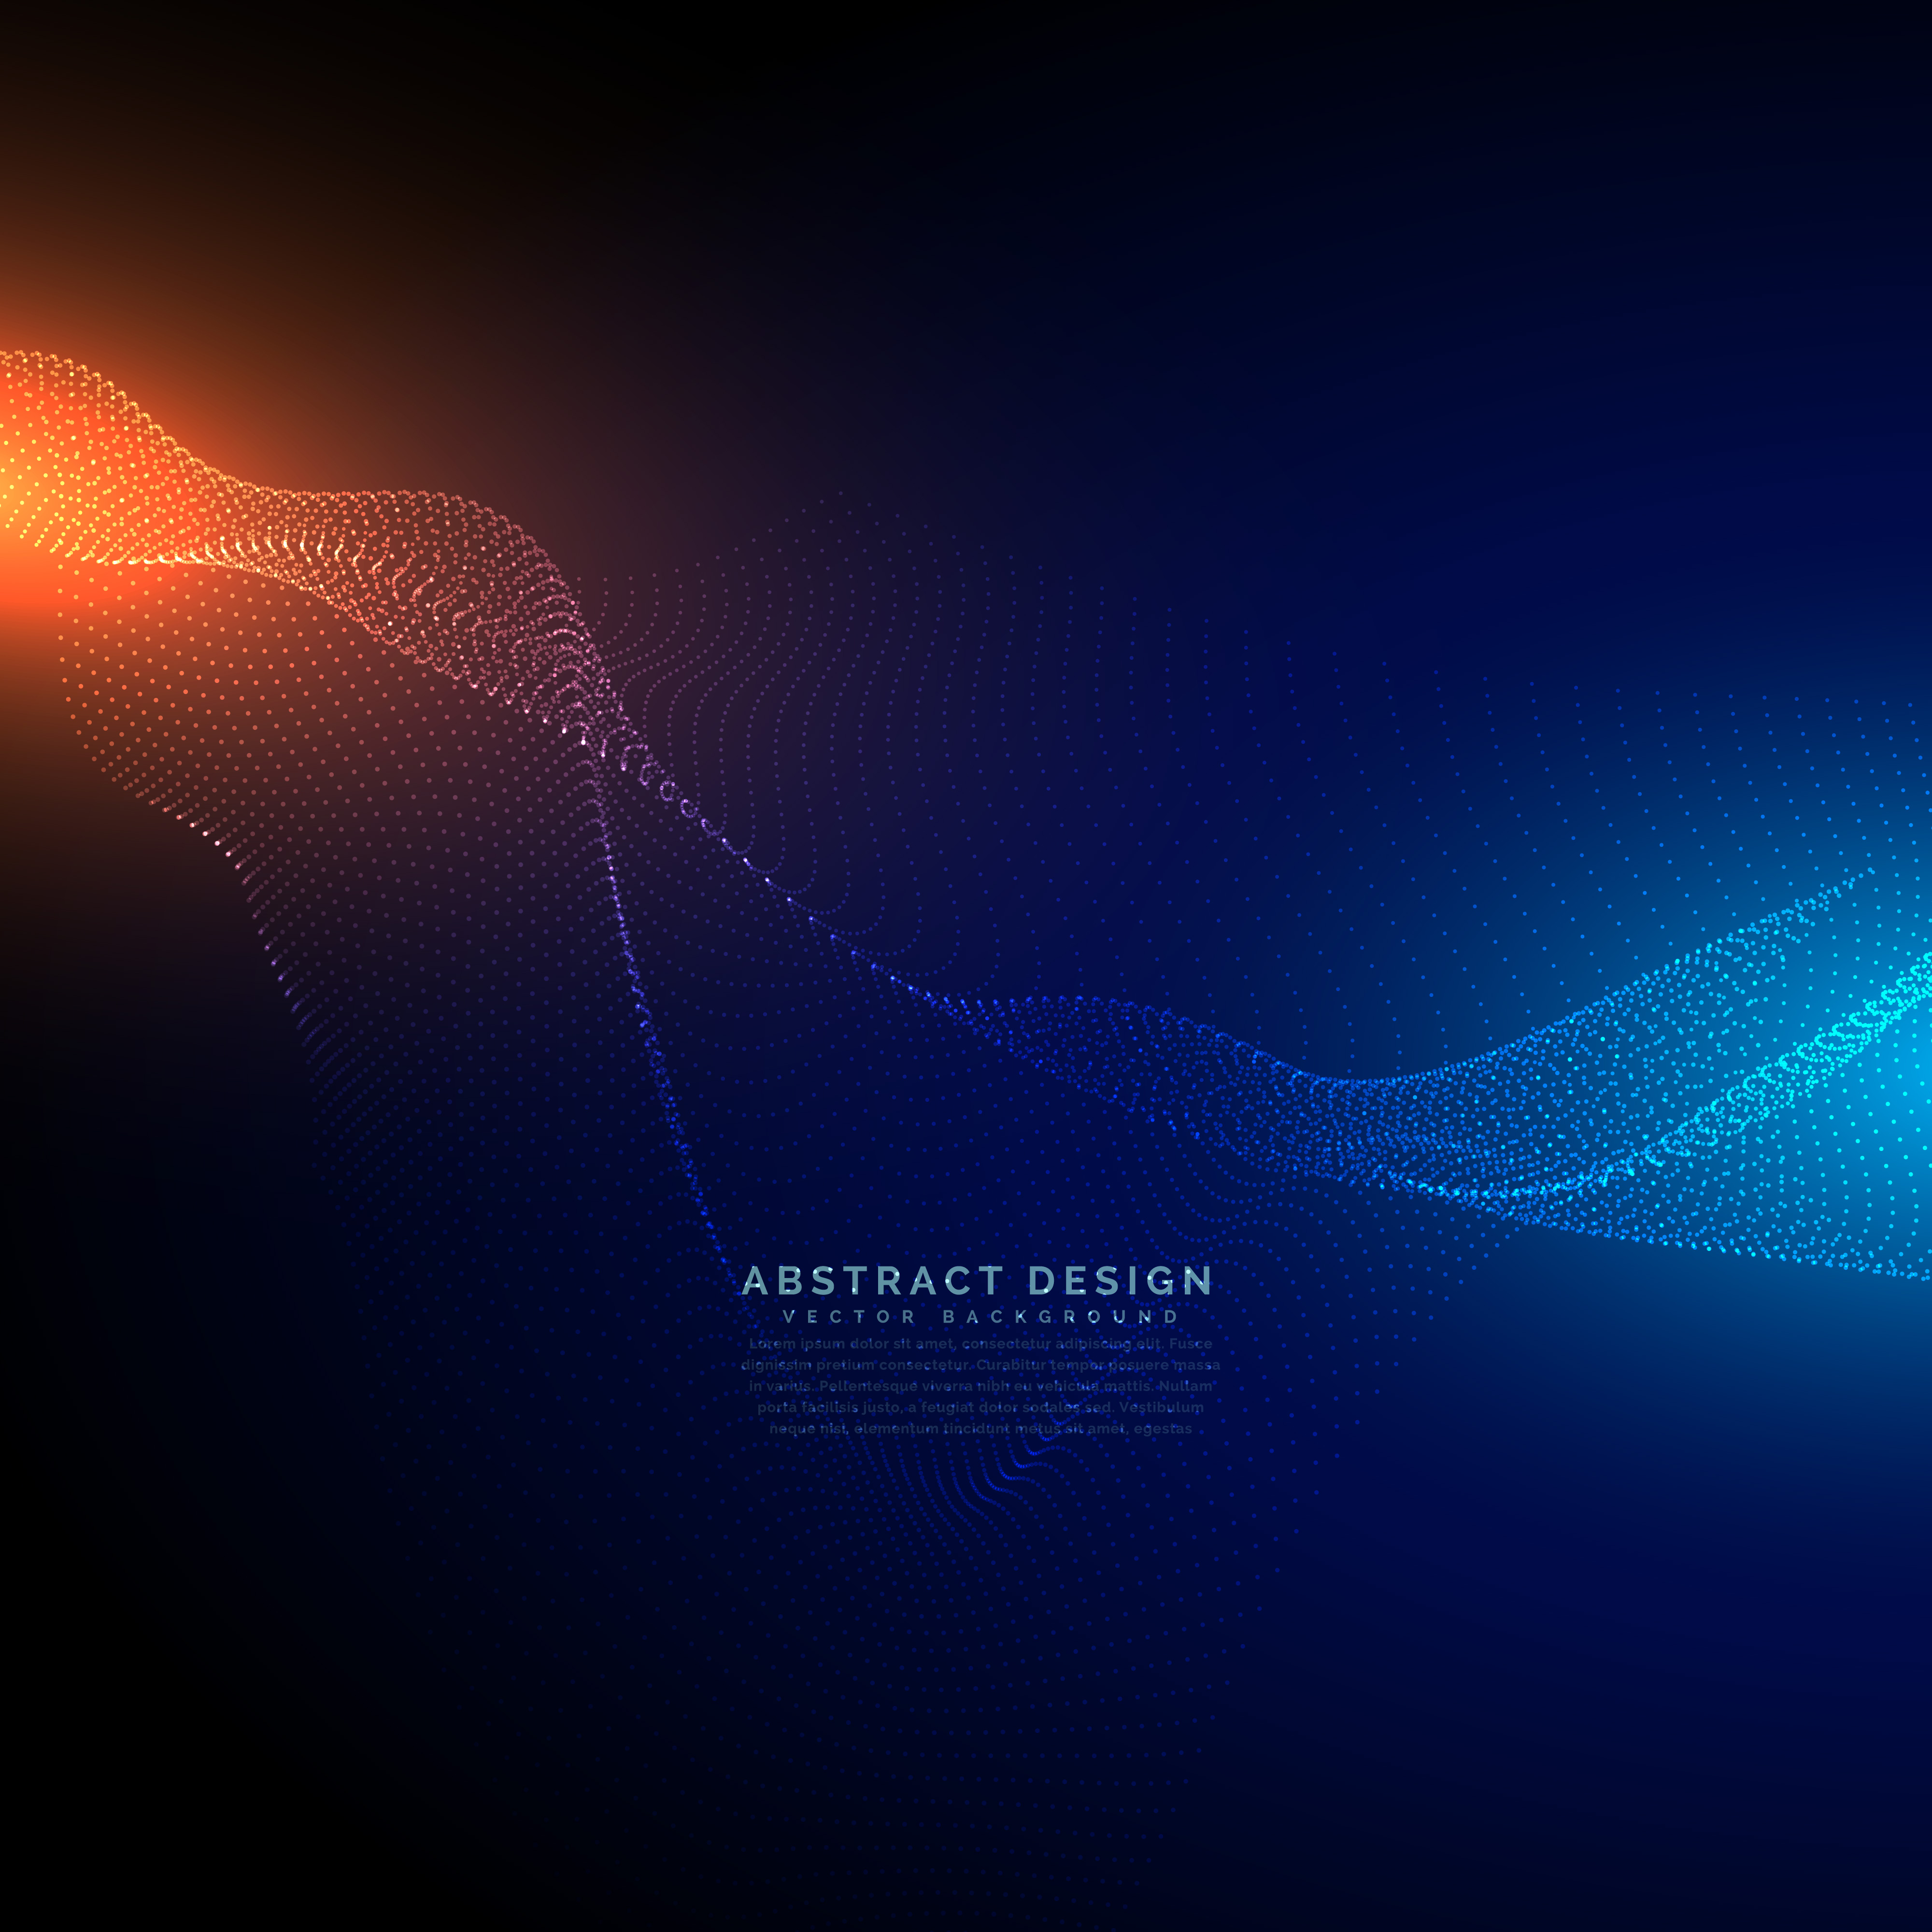 Blue Technology: Digital Particles Flow On Blue Technology Background